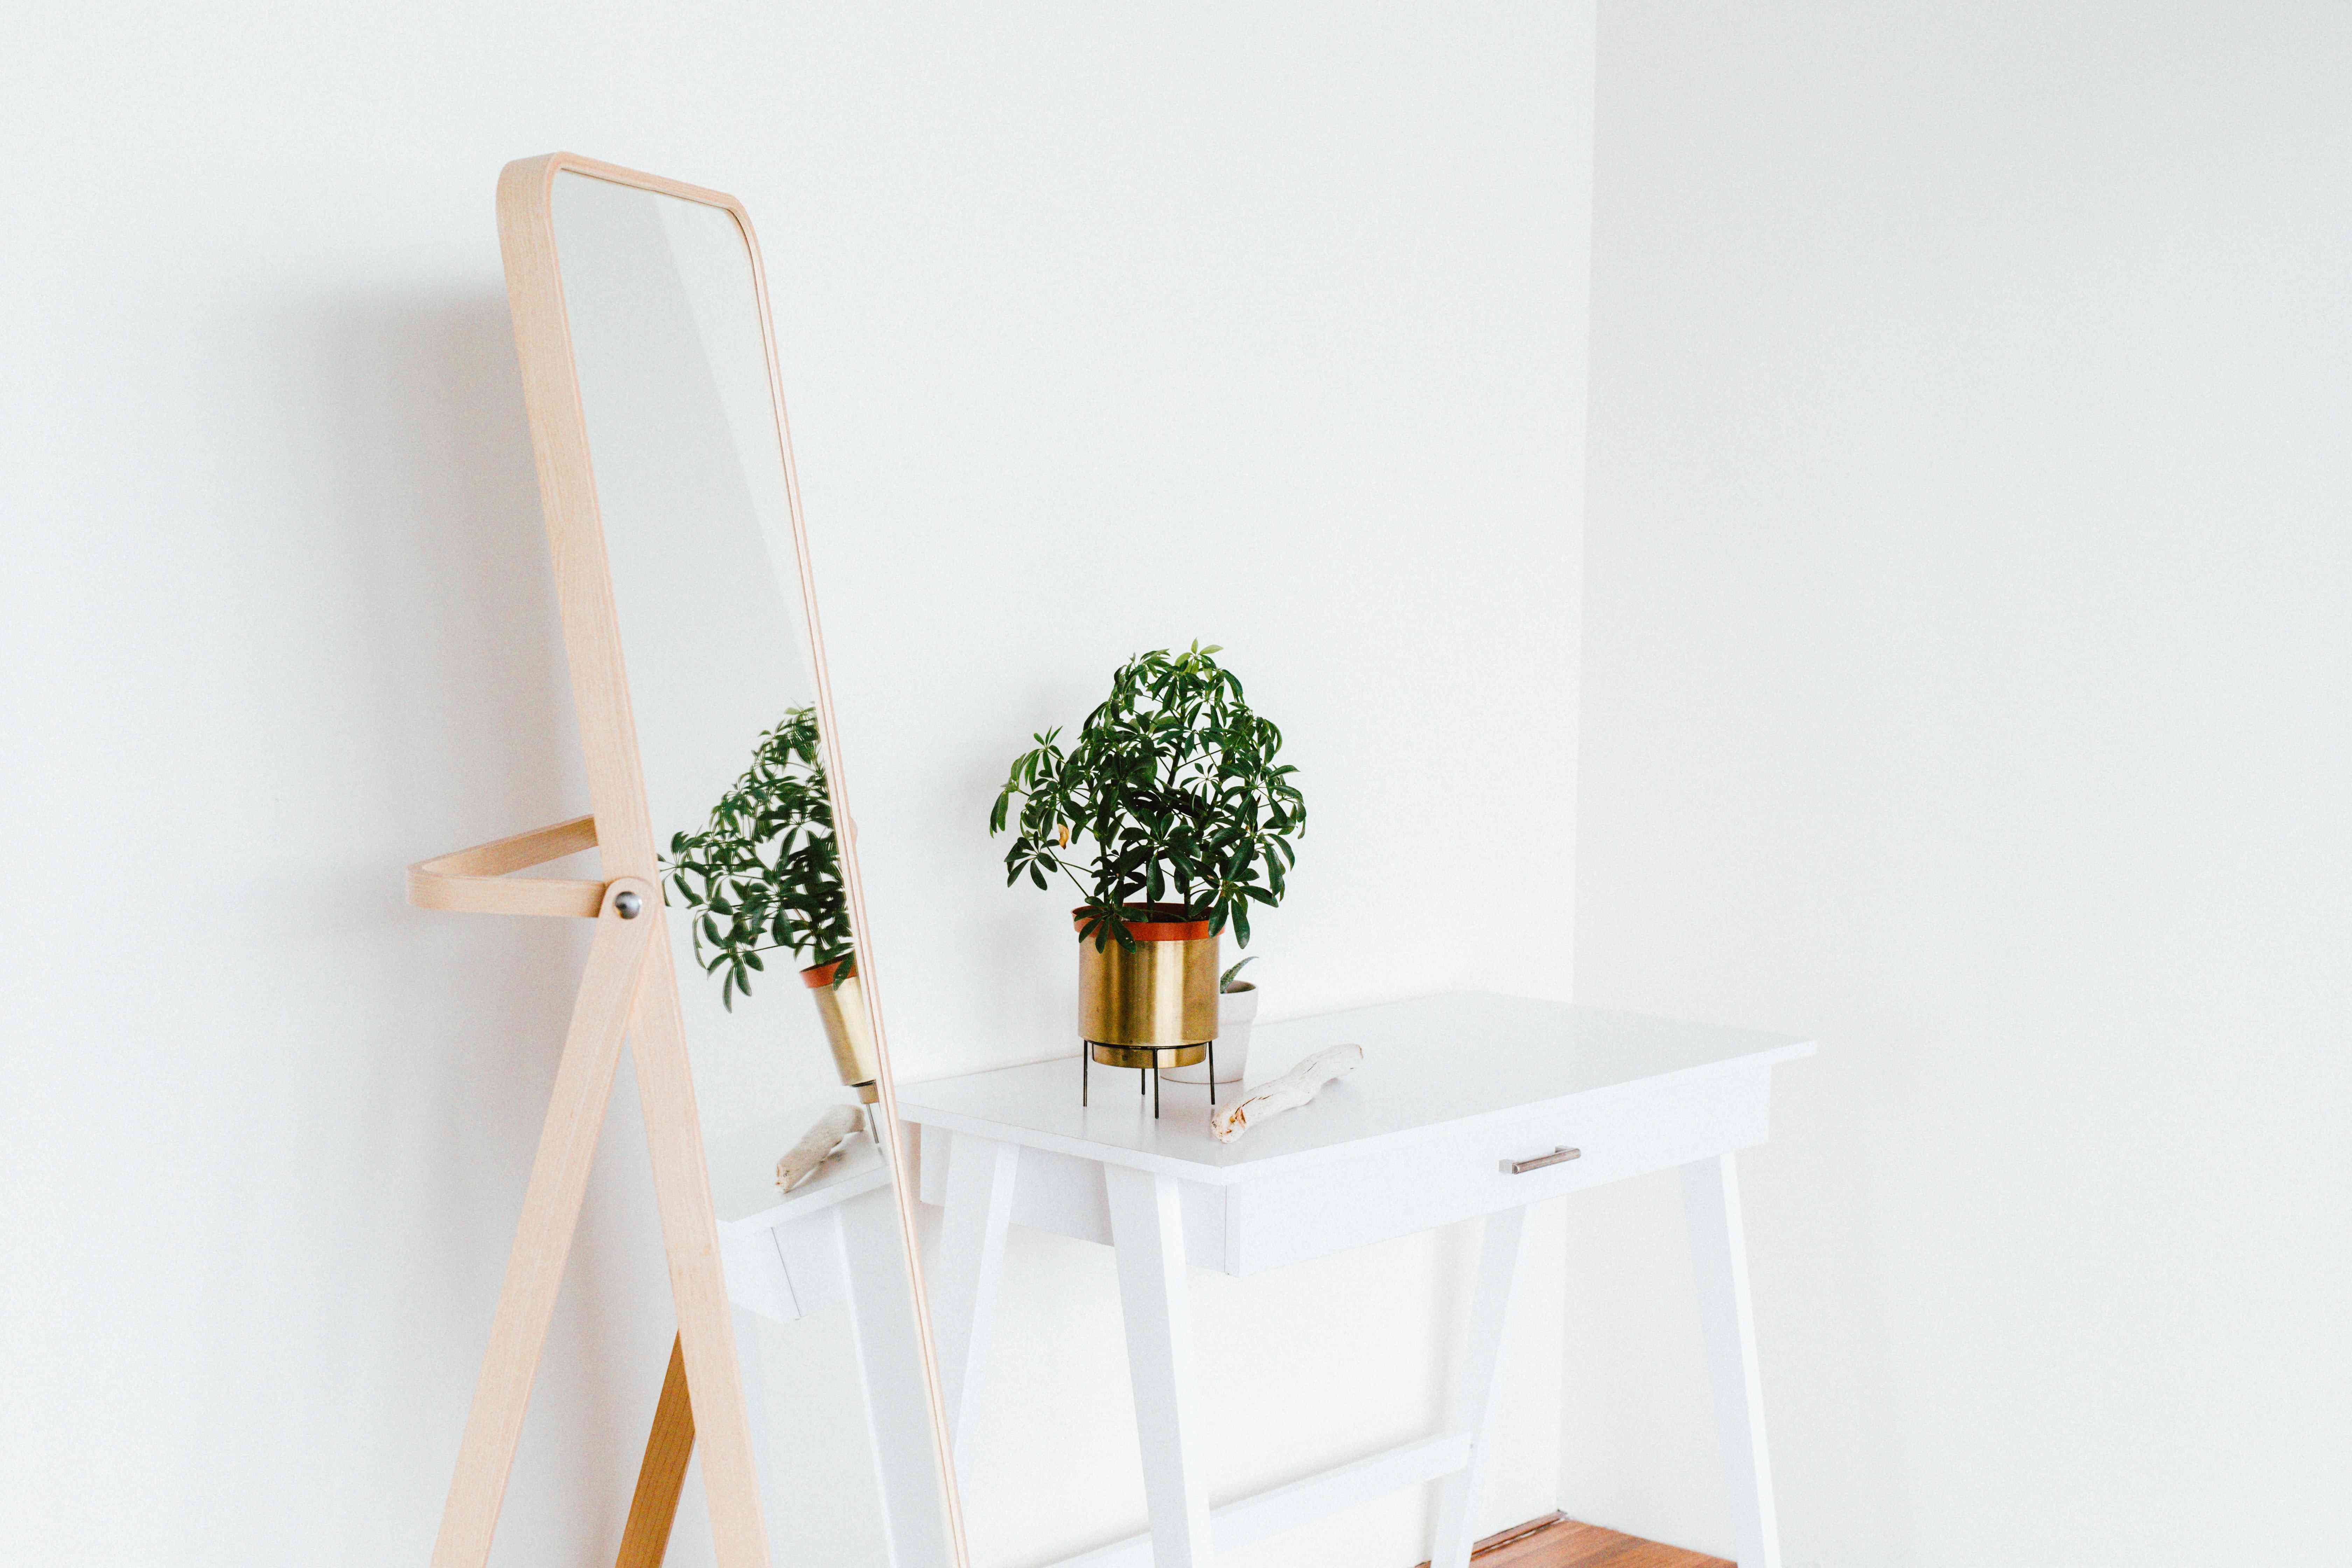 standing mirror next to a desk with plant